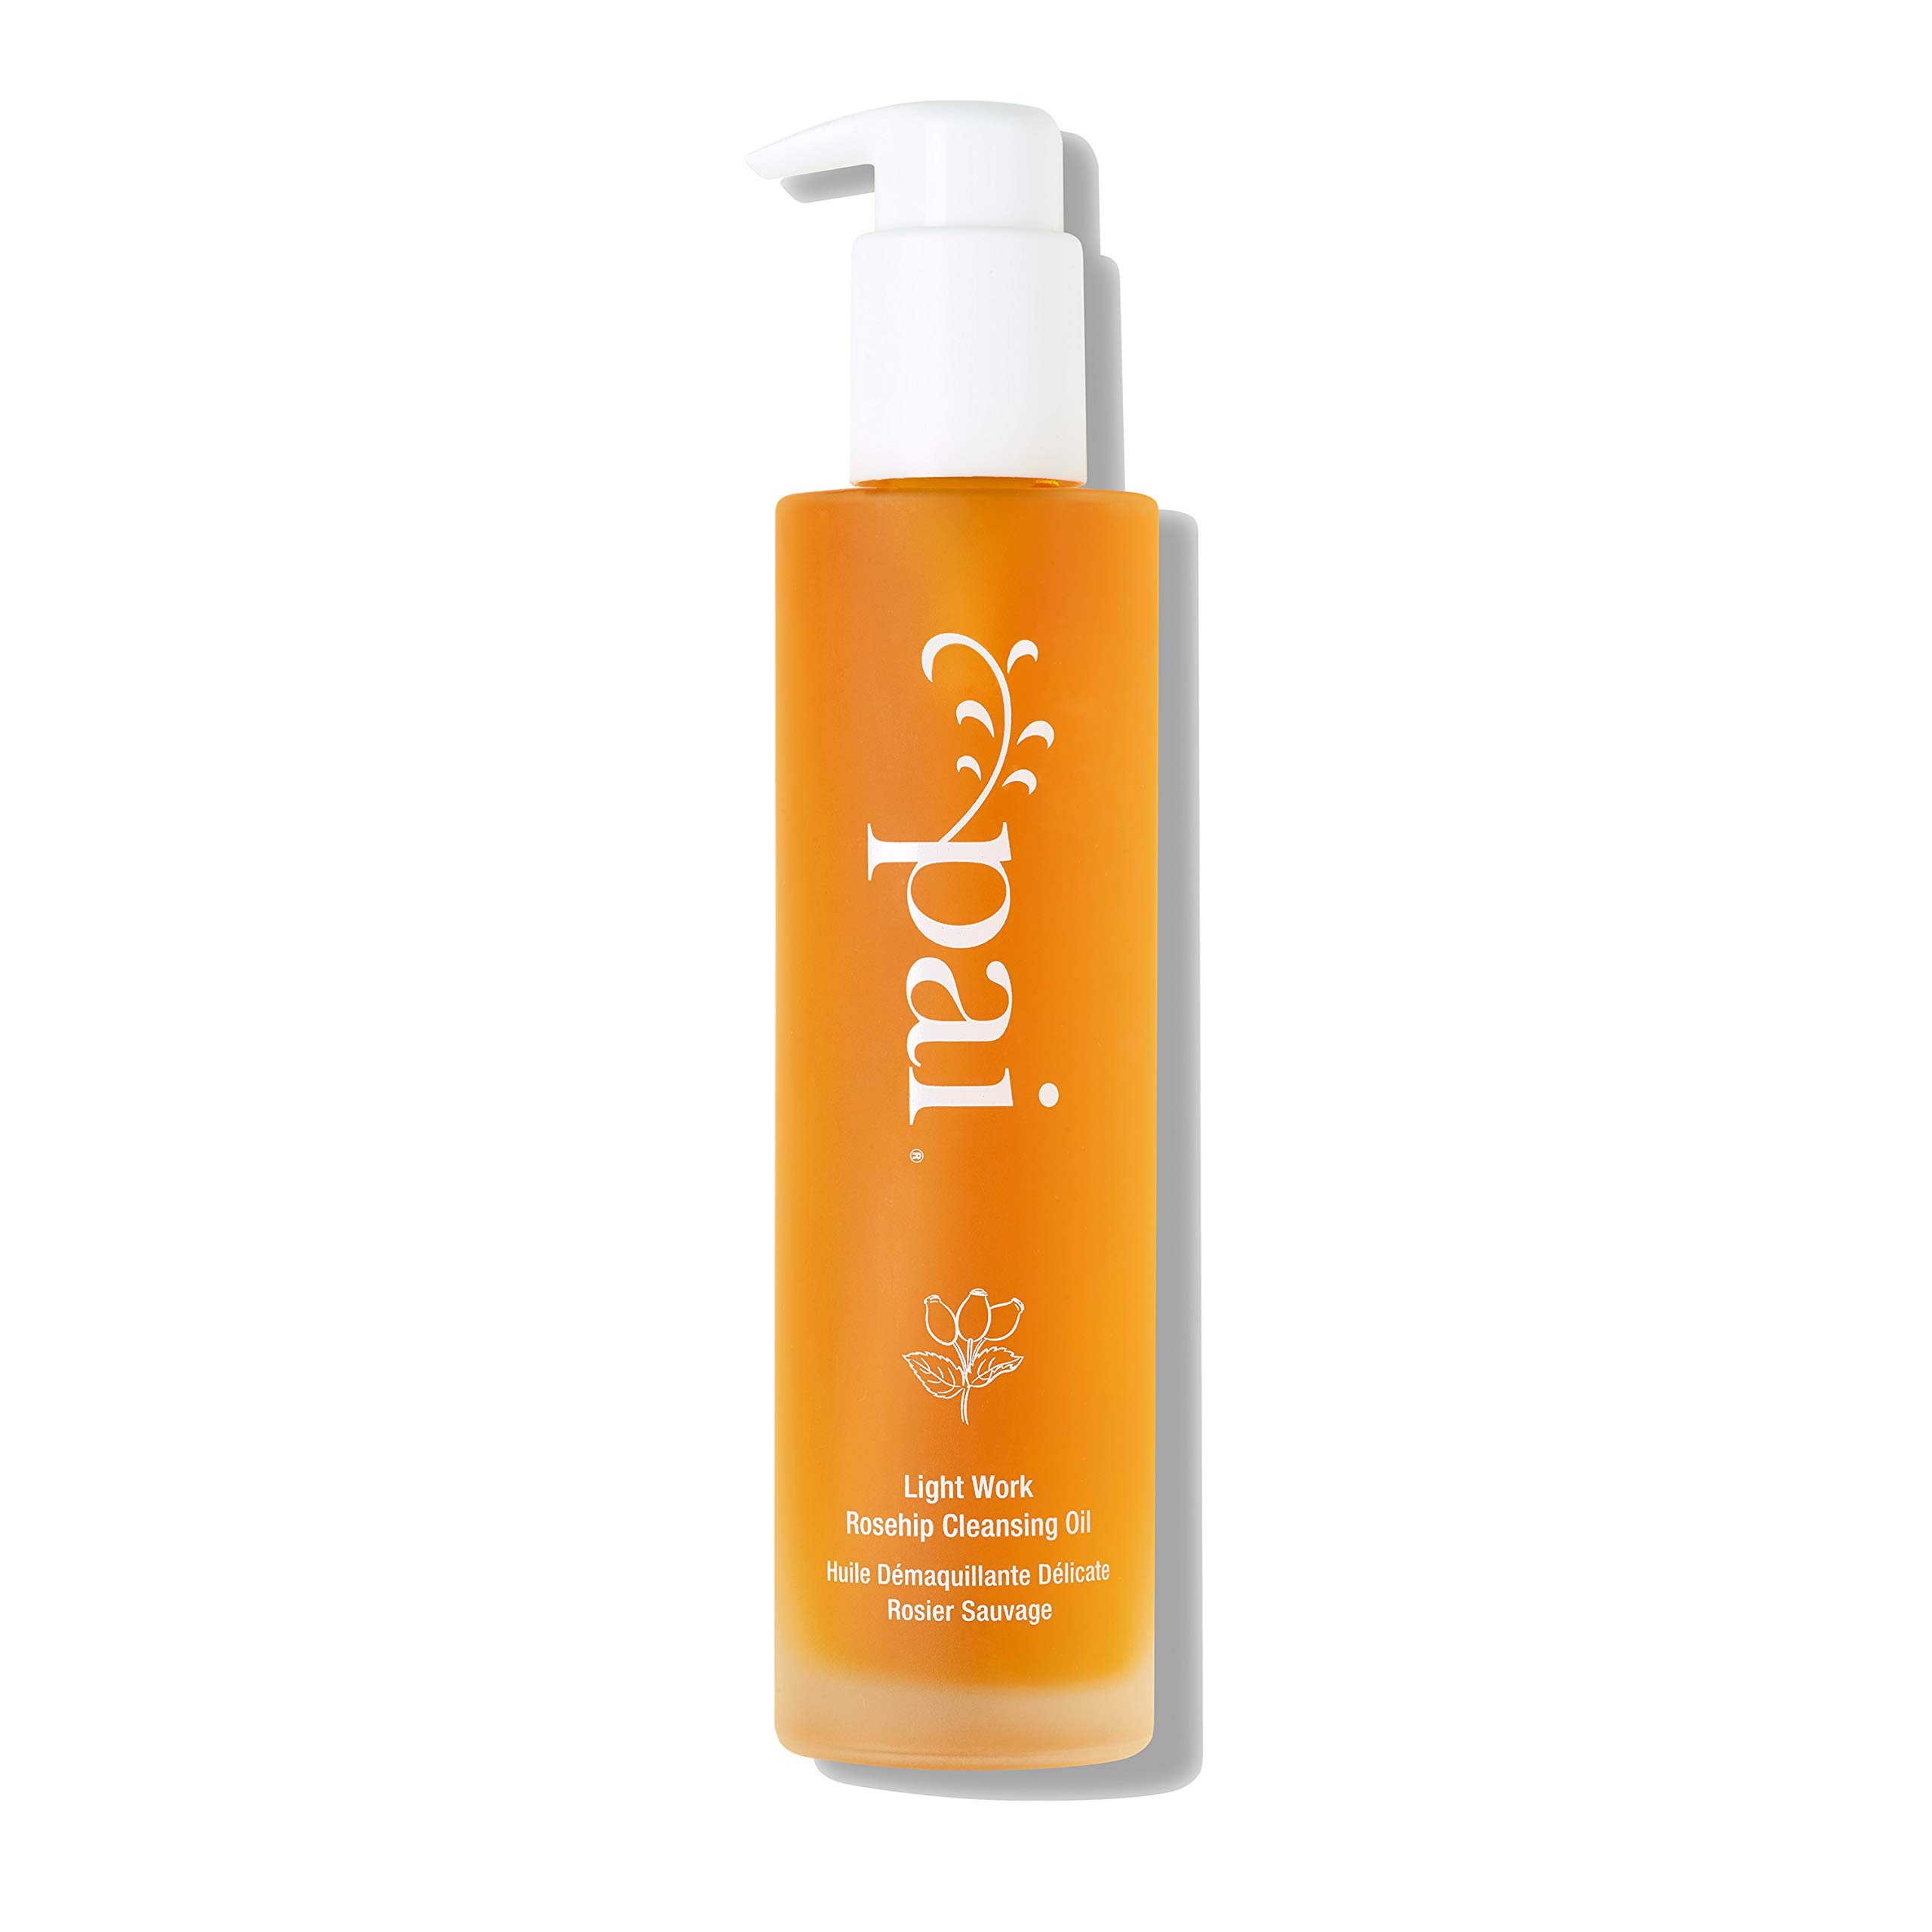 Pai Skincare Light Work Rosehip Cleansing Oil Suitable for Sensitive Skin & Eyes Organic Make up Removal - 145 ml